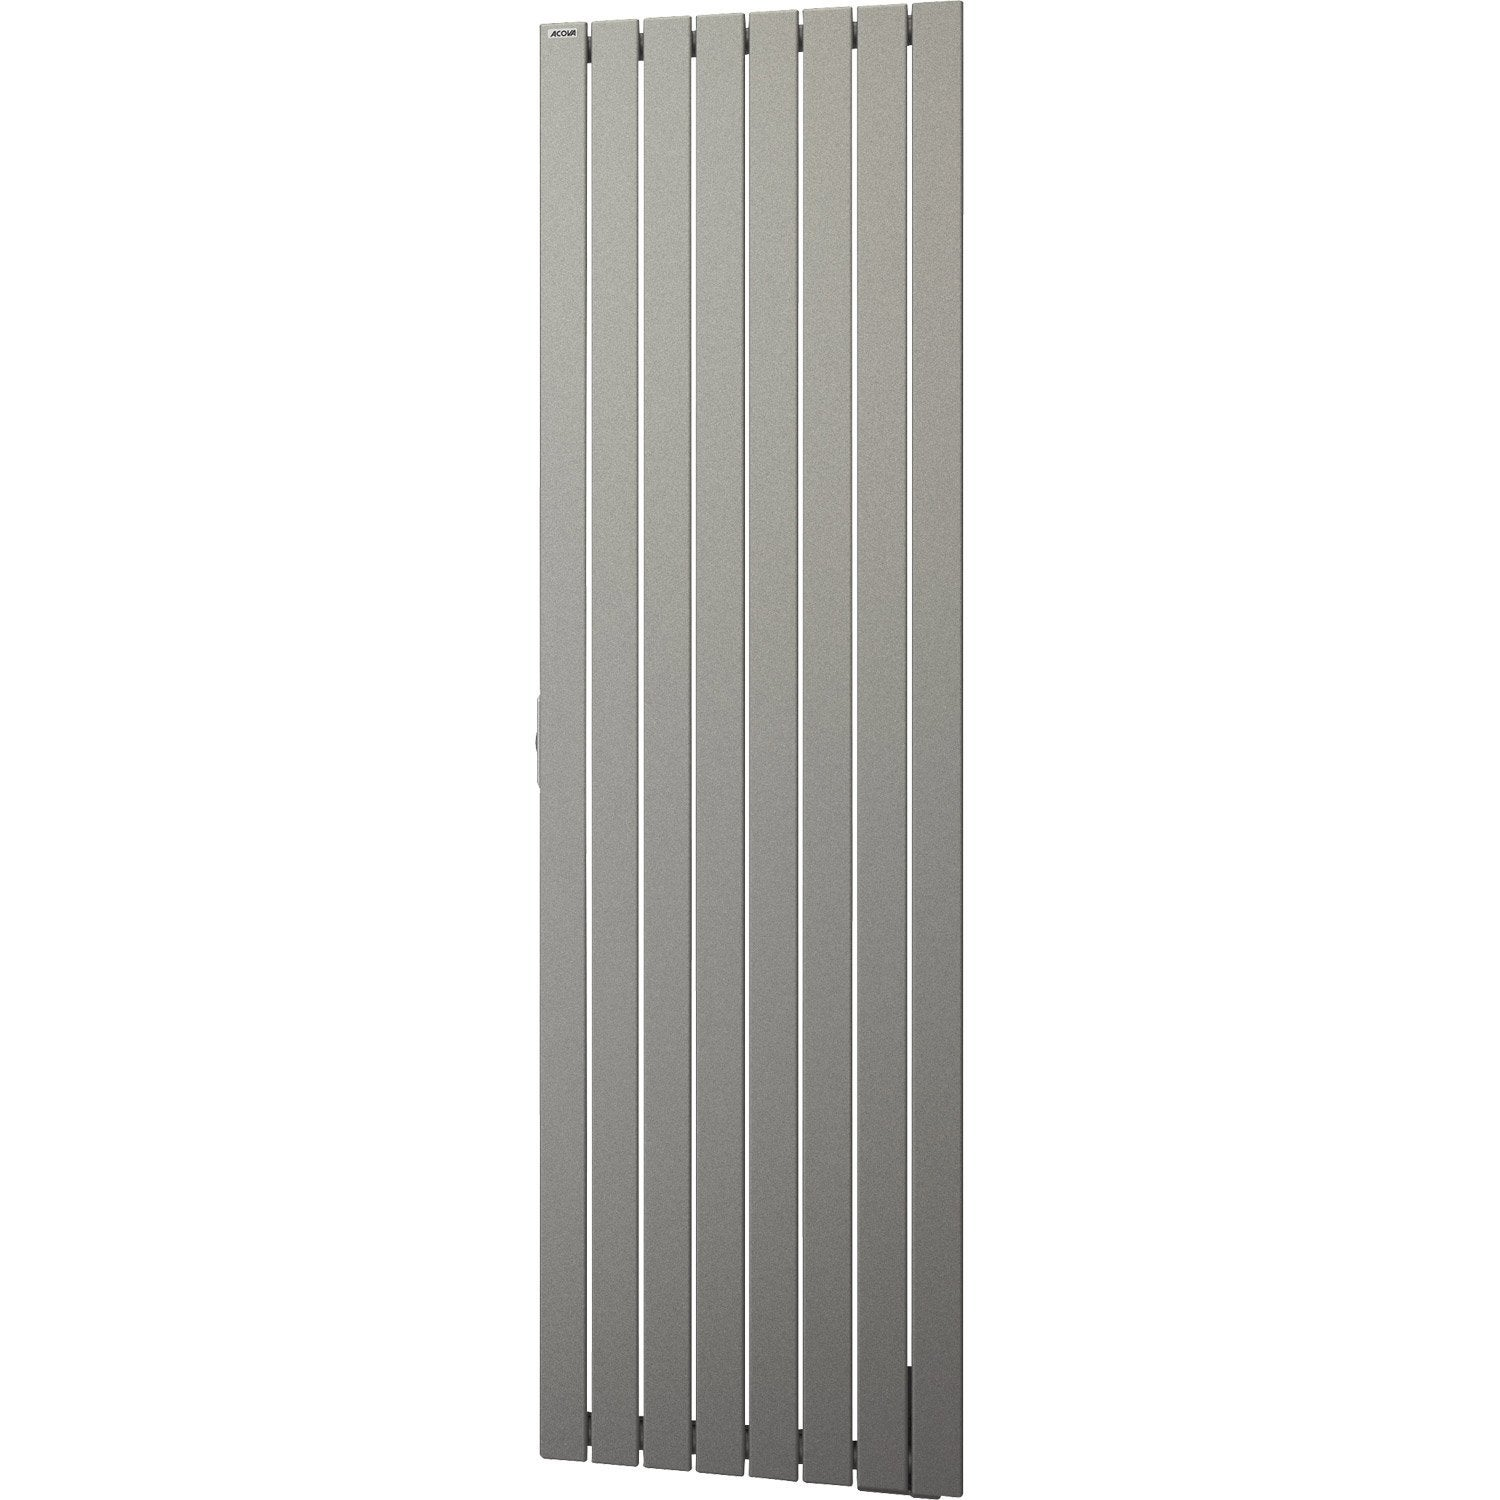 radiateur lectrique inertie fluide acova lina titane vertical 1000 w leroy merlin. Black Bedroom Furniture Sets. Home Design Ideas